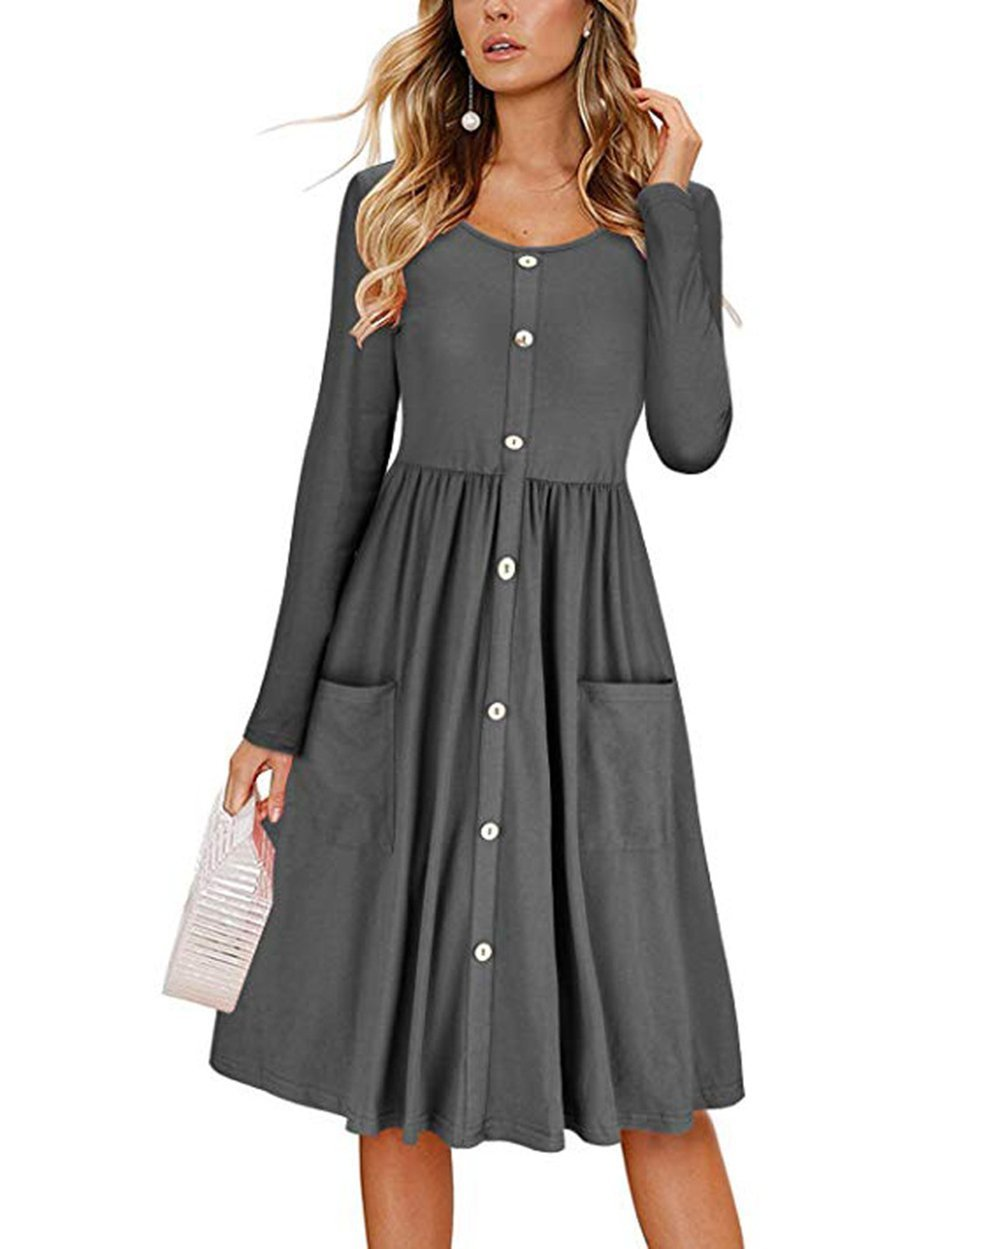 Barlver Women Casual Basic Long Sleeve T-Shirts Dress Crew Neck Button Down Swing Midi Dress with Pockets Crew Neck-Grey 8-10